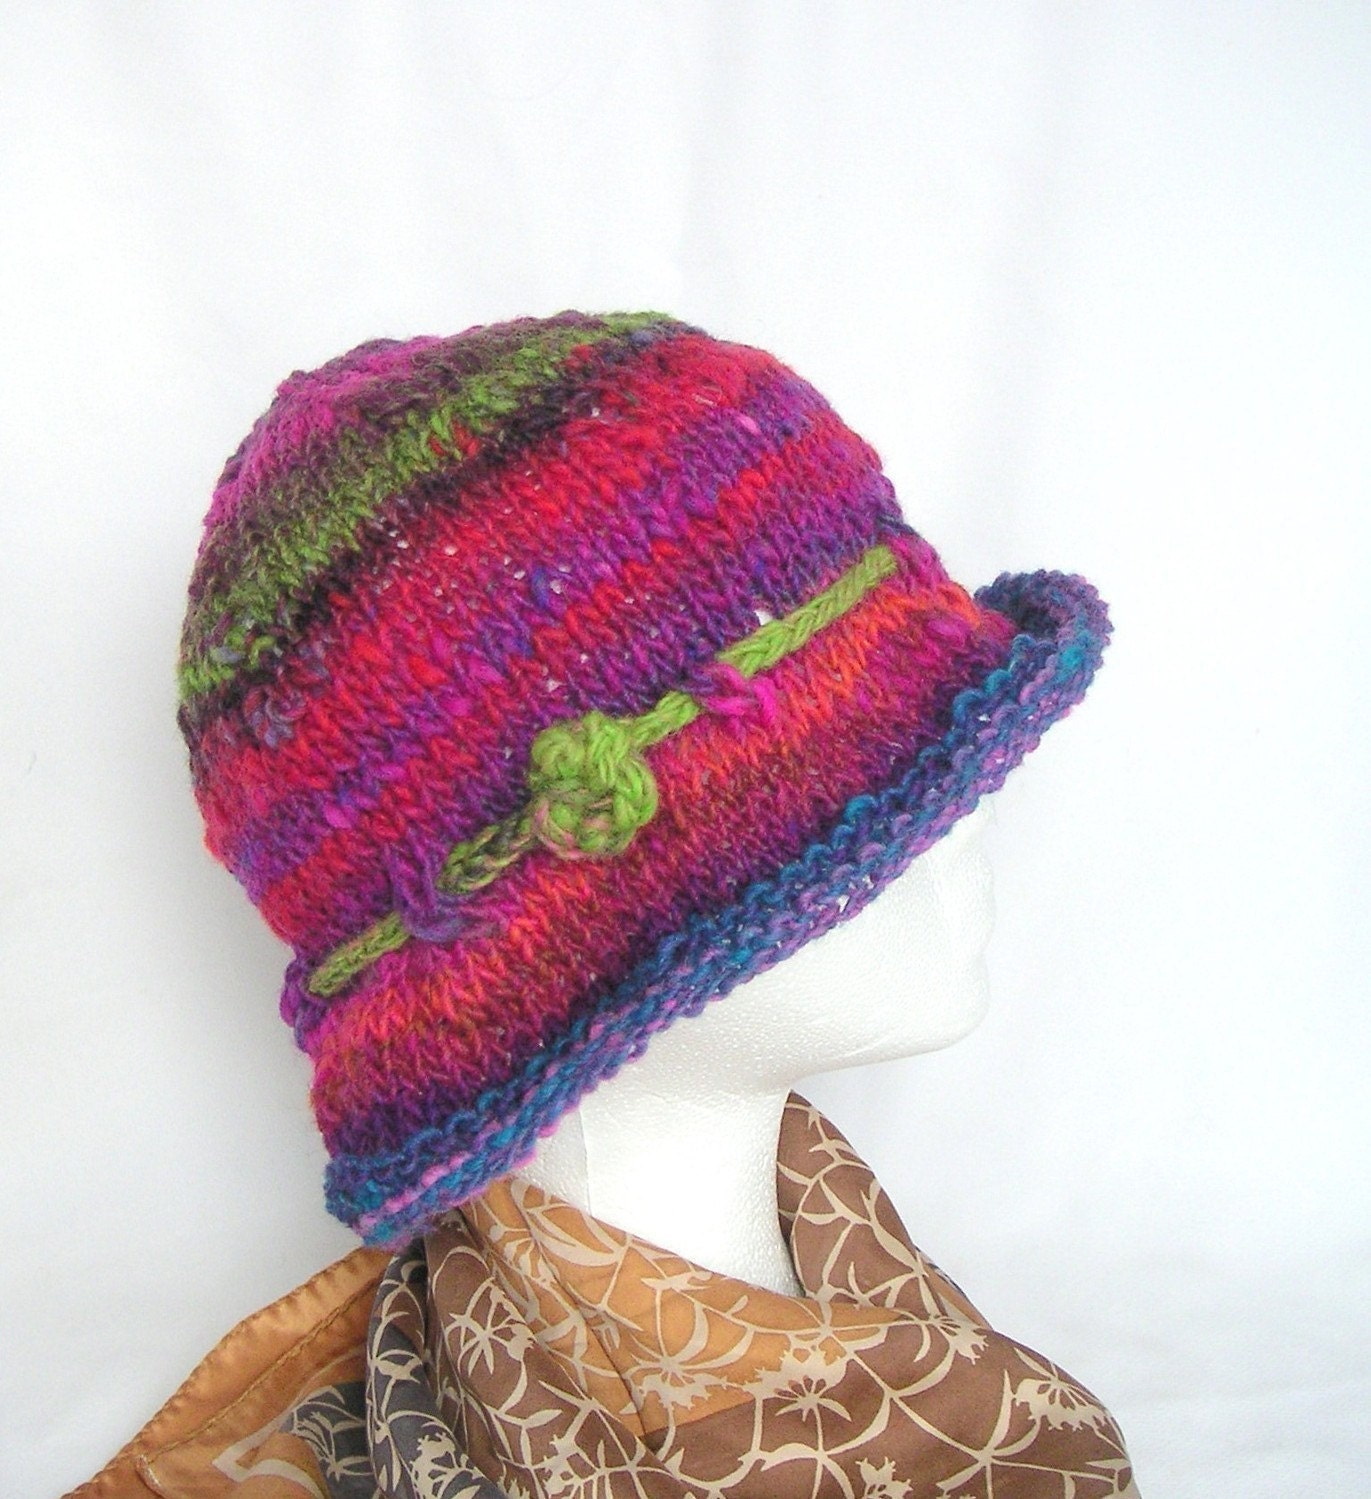 Simple Knit Hat Pattern Free : EASY KNITTING PATTERNS FOR HATS   Free Patterns